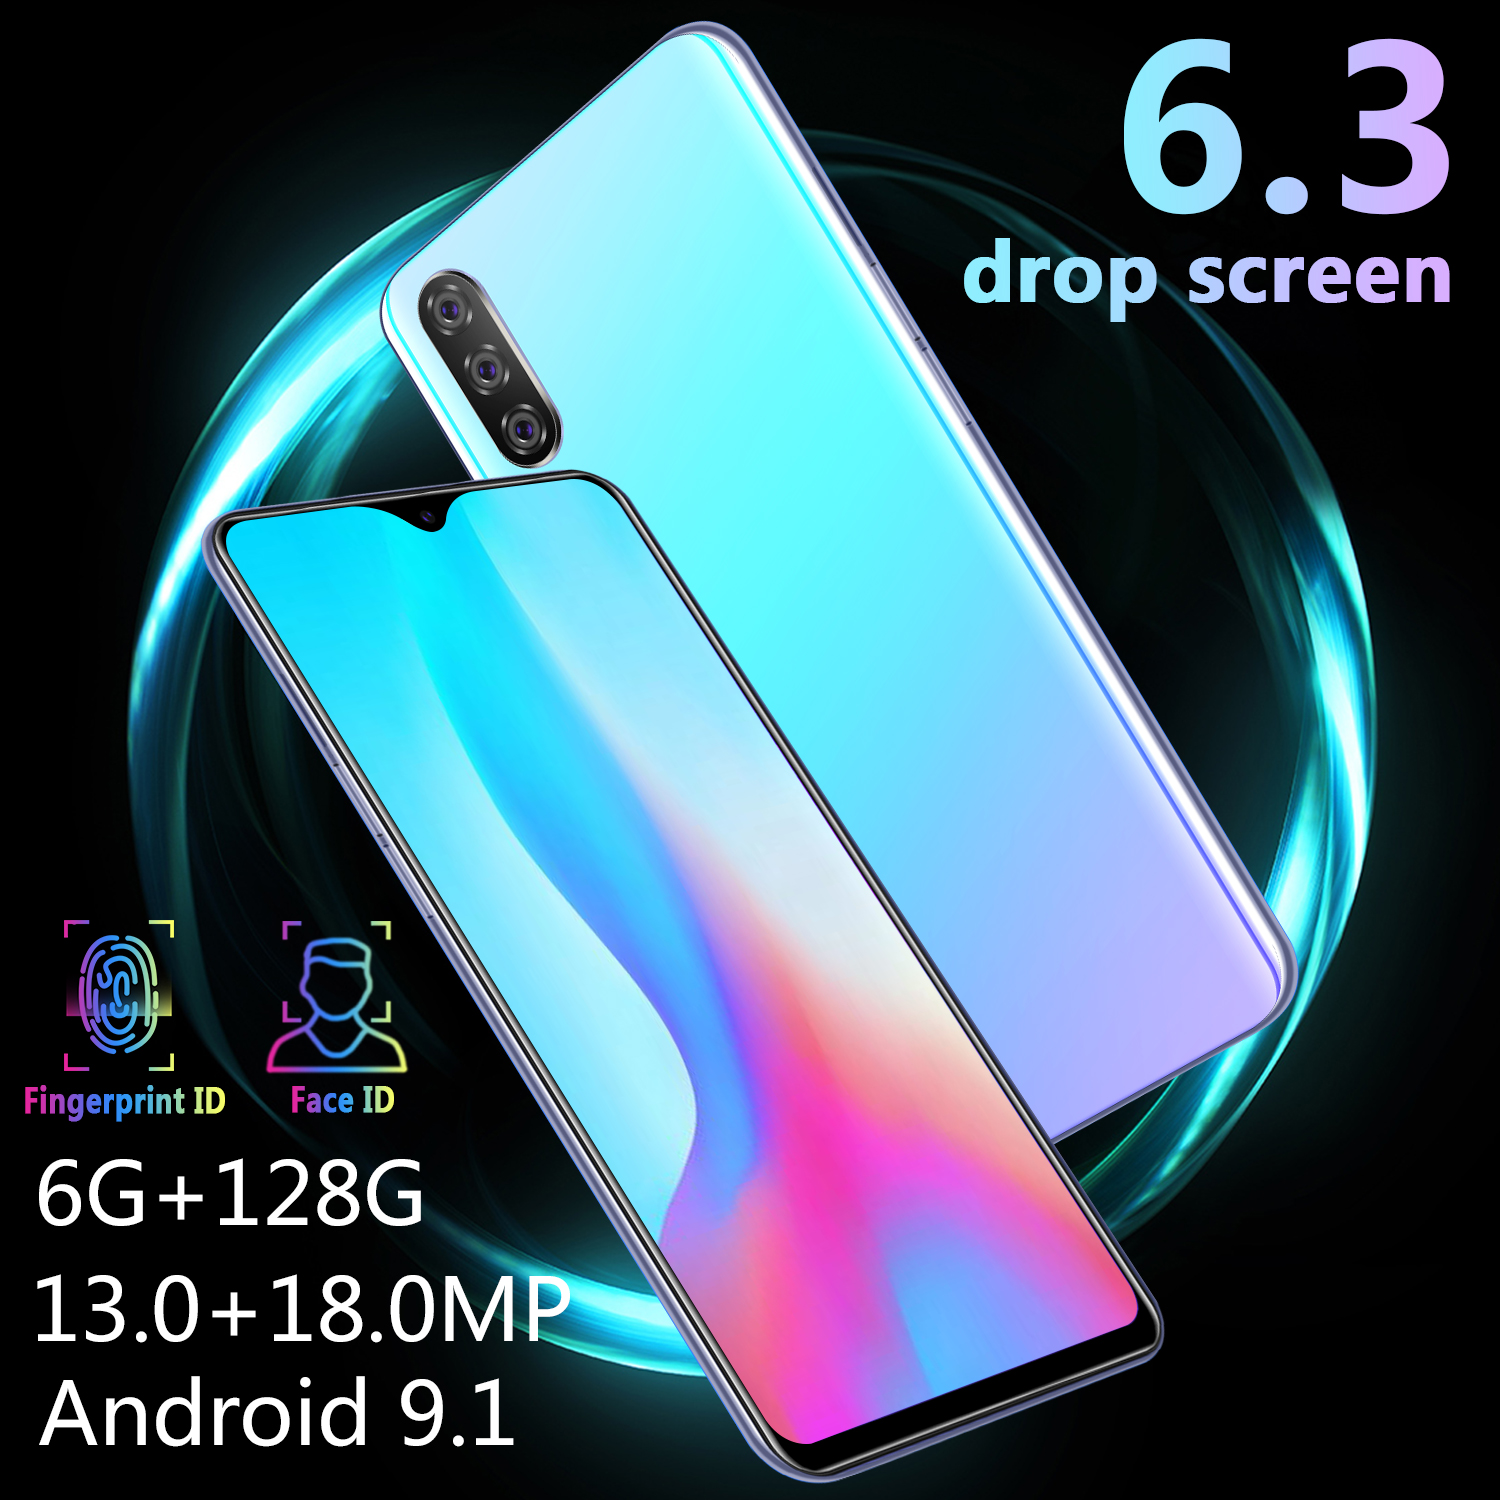 Image 3 - CHAOAI M9 Smartphone 6GB 128GB Global Version Smart Cell Phone 6.3 inch Water Drop Screen Dual Sim 3G Mobile-in Cellphones from Cellphones & Telecommunications